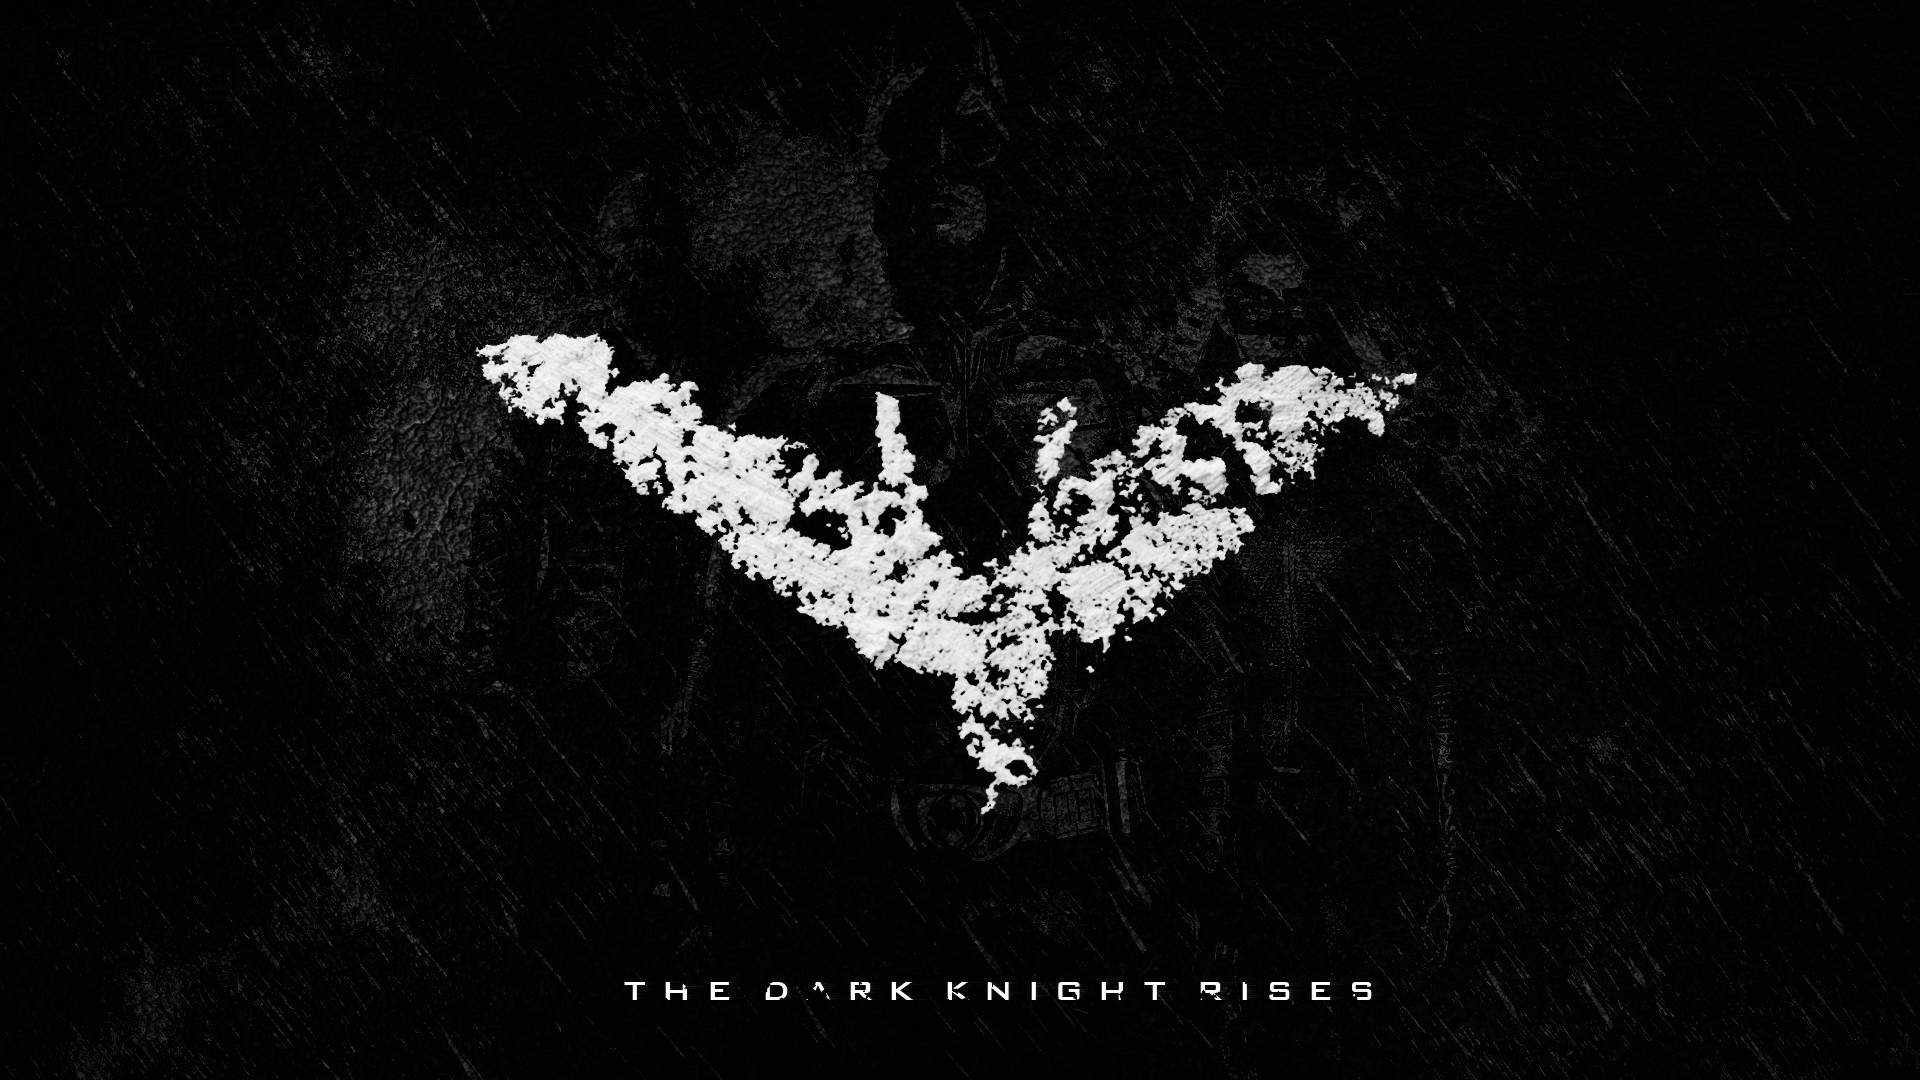 1920x1080 The Dark Knight Rises Wallpaper 2 by PKwithVengeance on .